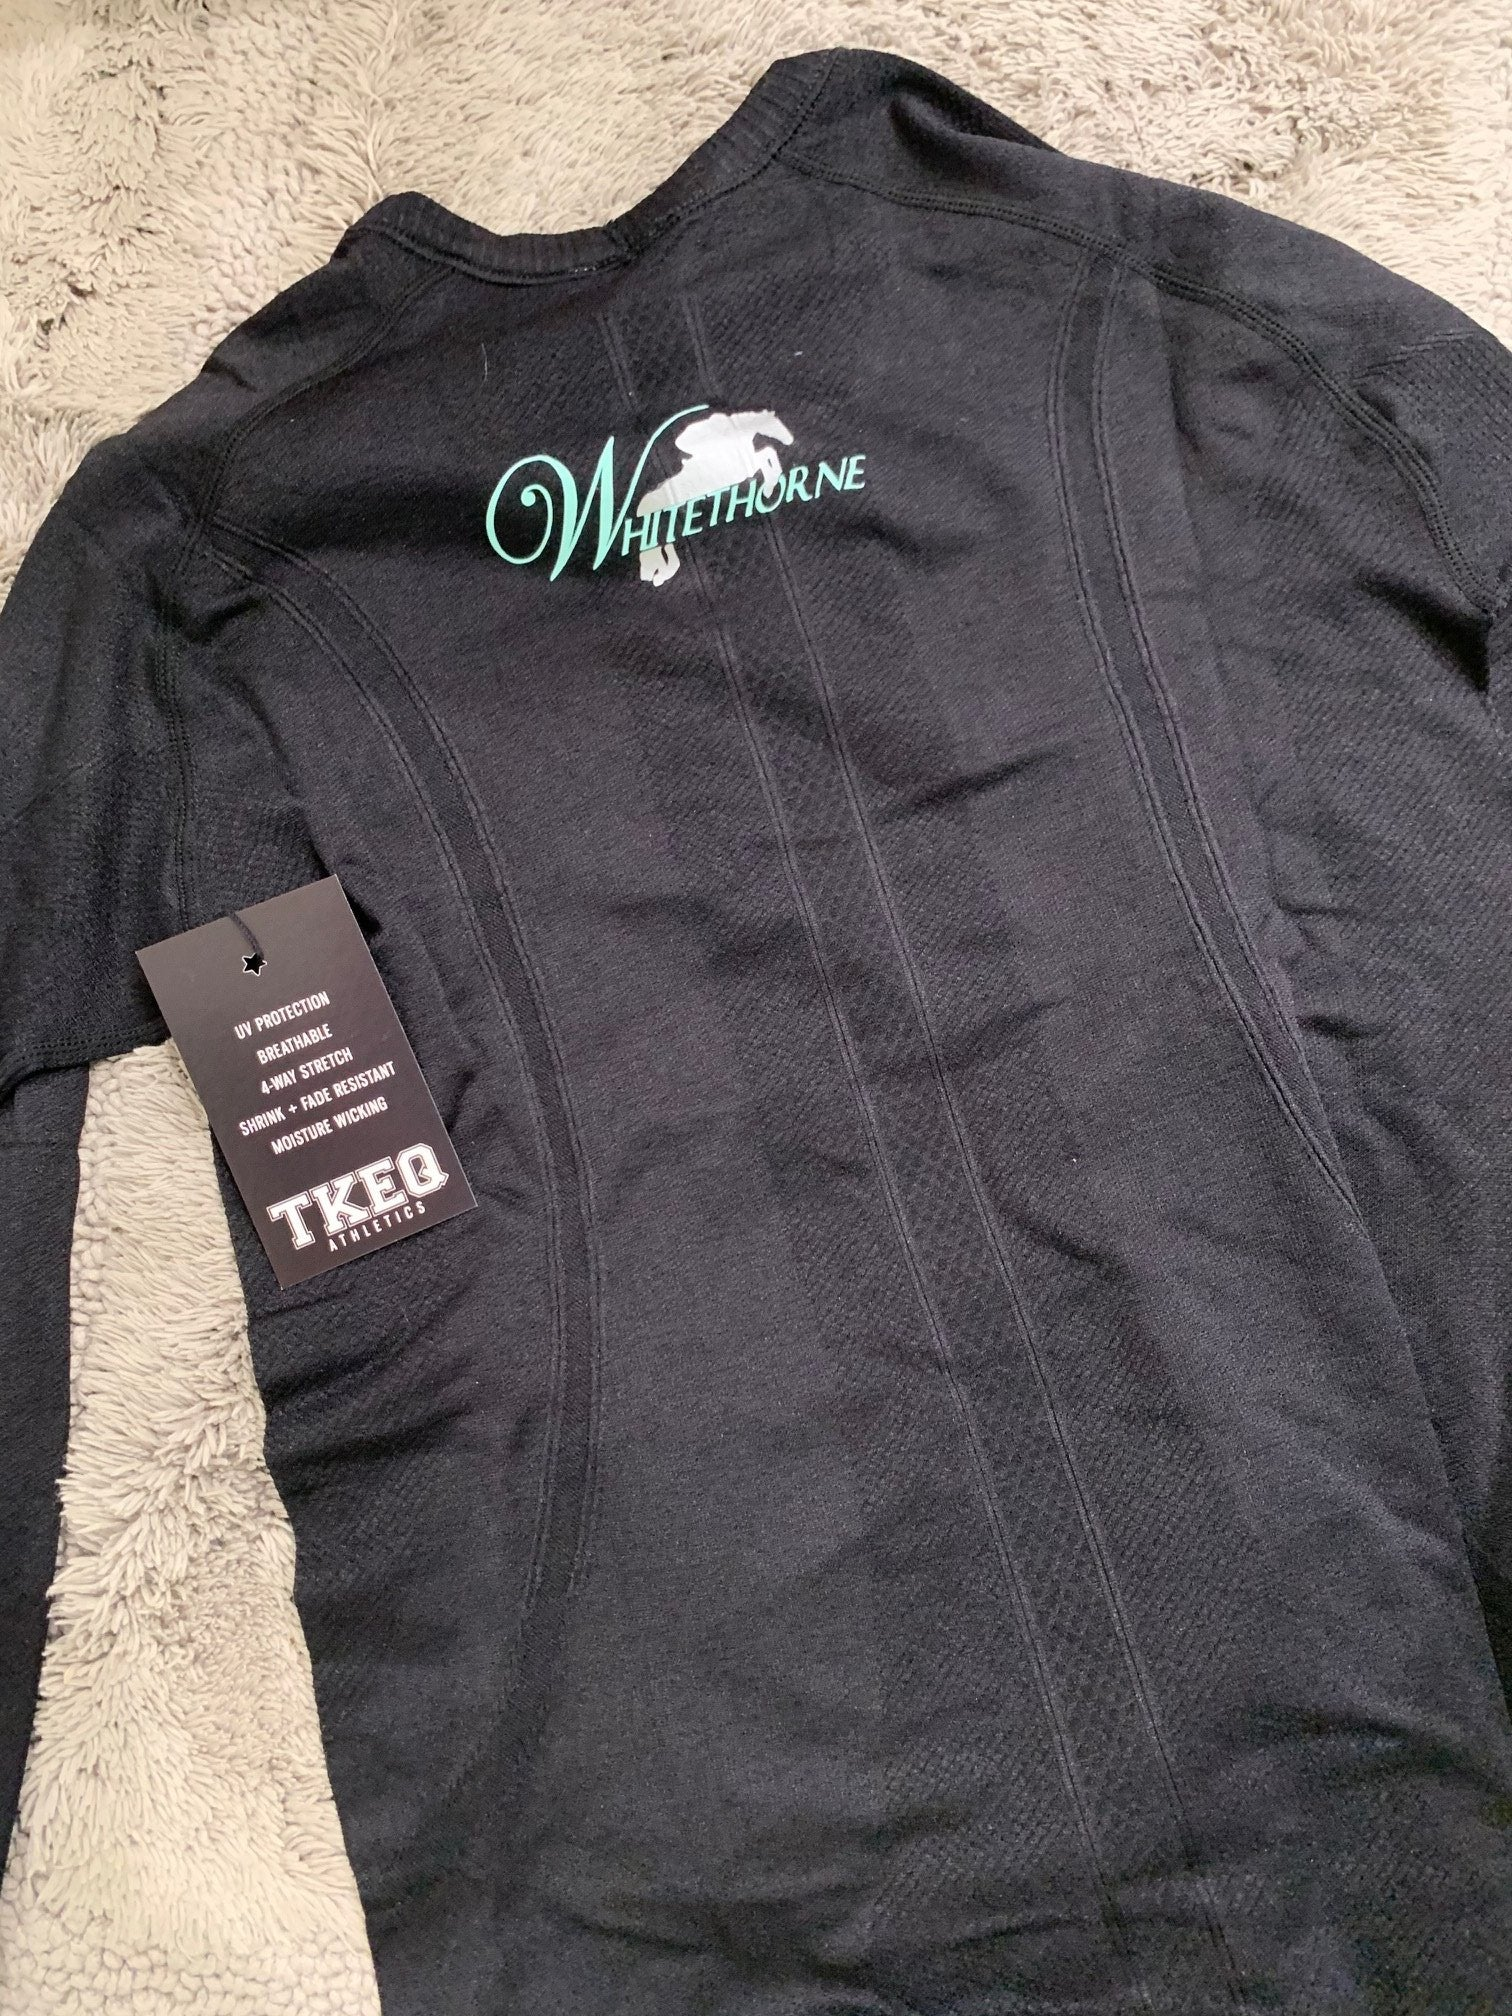 Equestrian Team Apparel Custom Shirts Whitehorne TKEQ Longsleeve equestrian team apparel online tack store mobile tack store custom farm apparel custom show stable clothing equestrian lifestyle horse show clothing riding clothes horses equestrian tack store